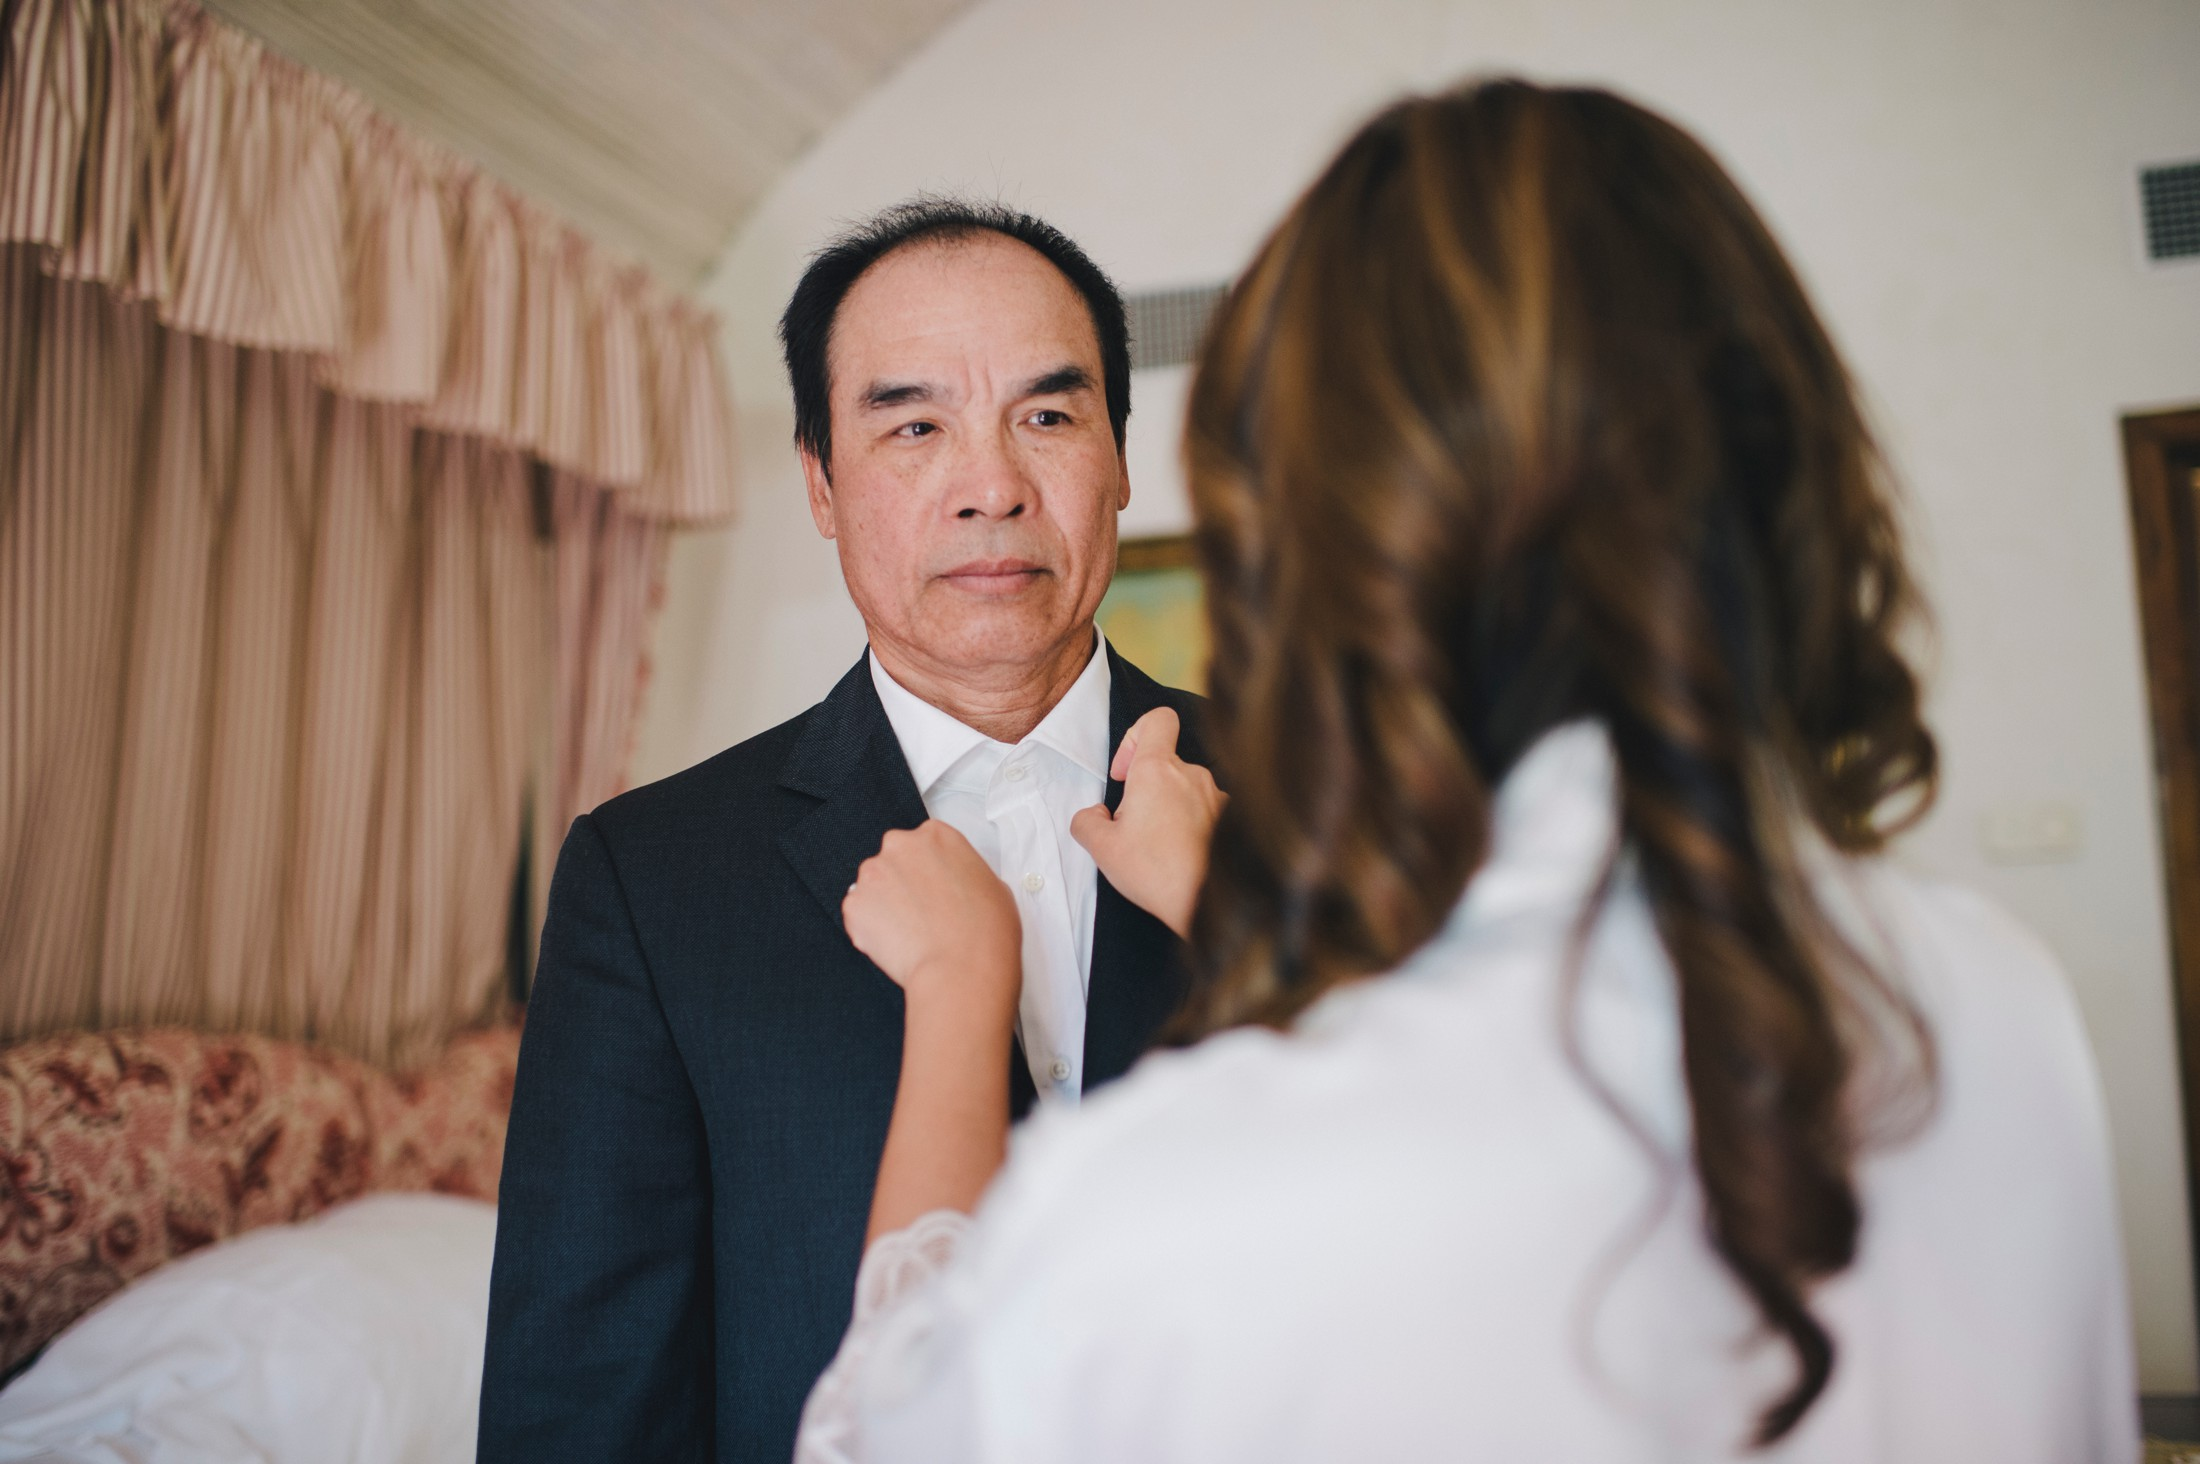 the bride and her father during the preparation